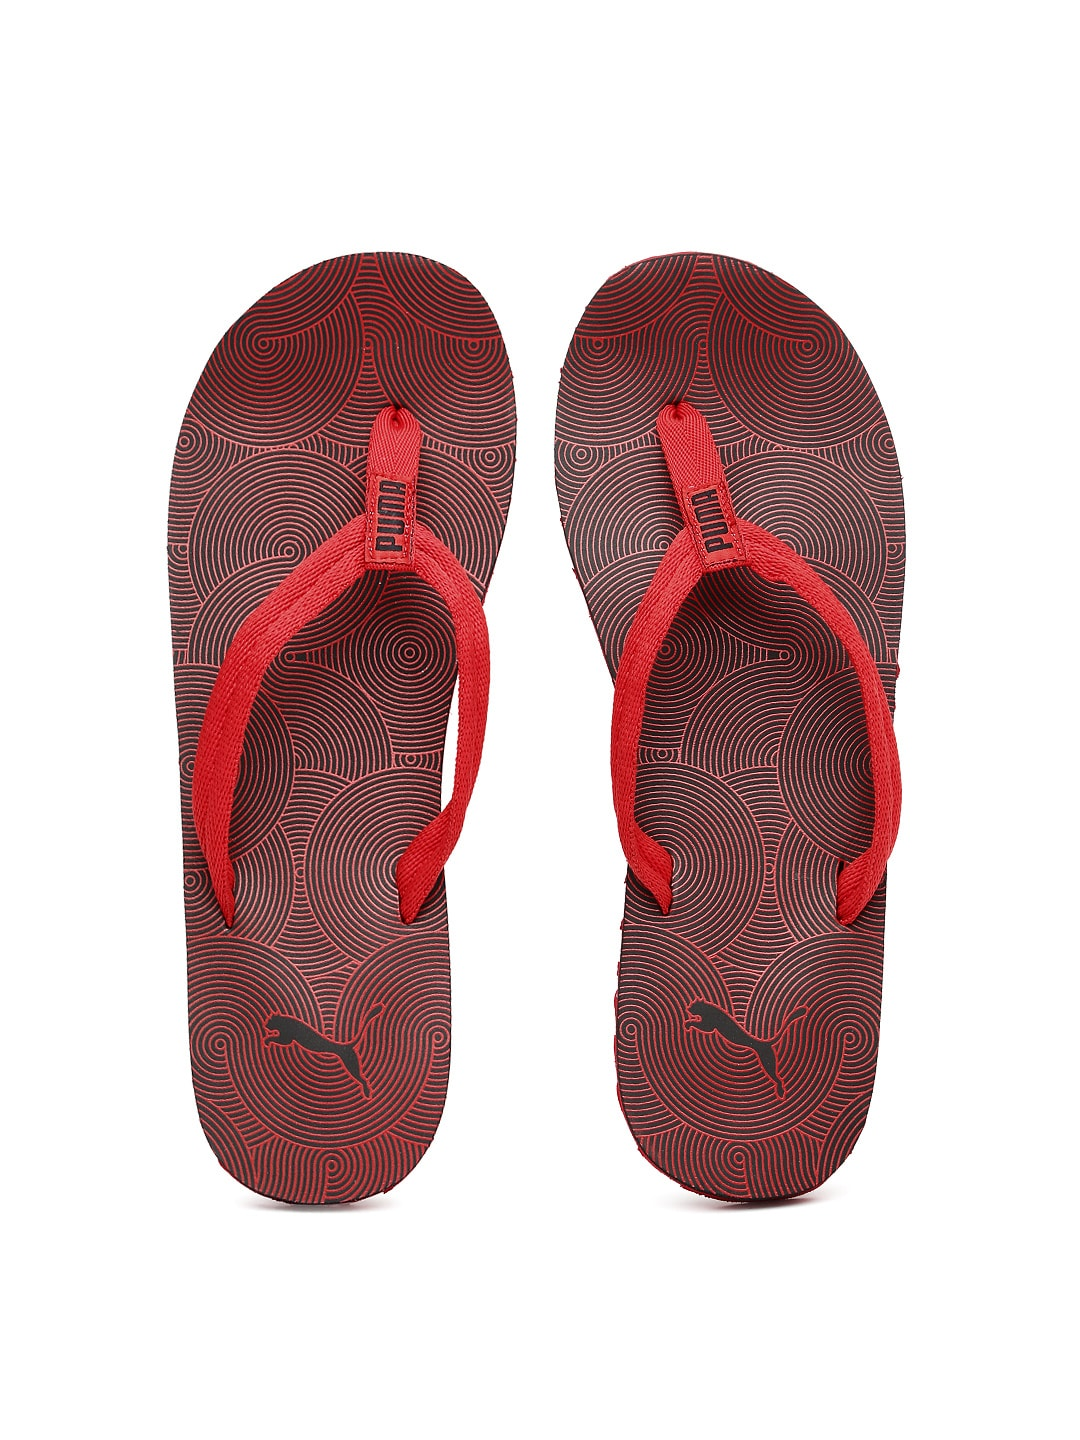 Sports Puma Lotto Men Sandals Flip Flops - Buy Sports Puma Lotto Men  Sandals Flip Flops online in India f3462e9f3